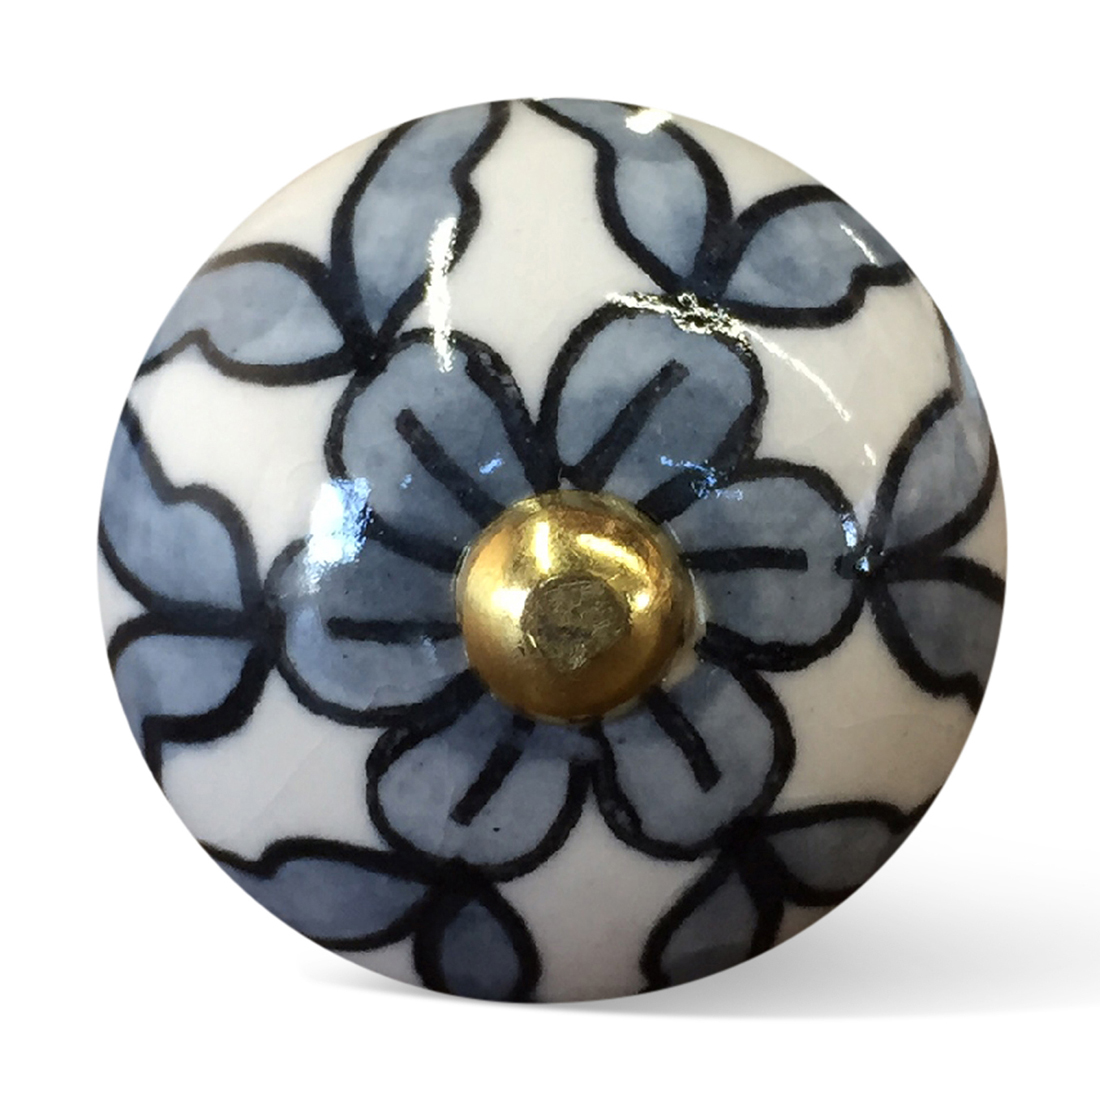 """1.5"""" x 1.5"""" x 1.5"""" White, Blue and Black - Knobs 12-Pack"""